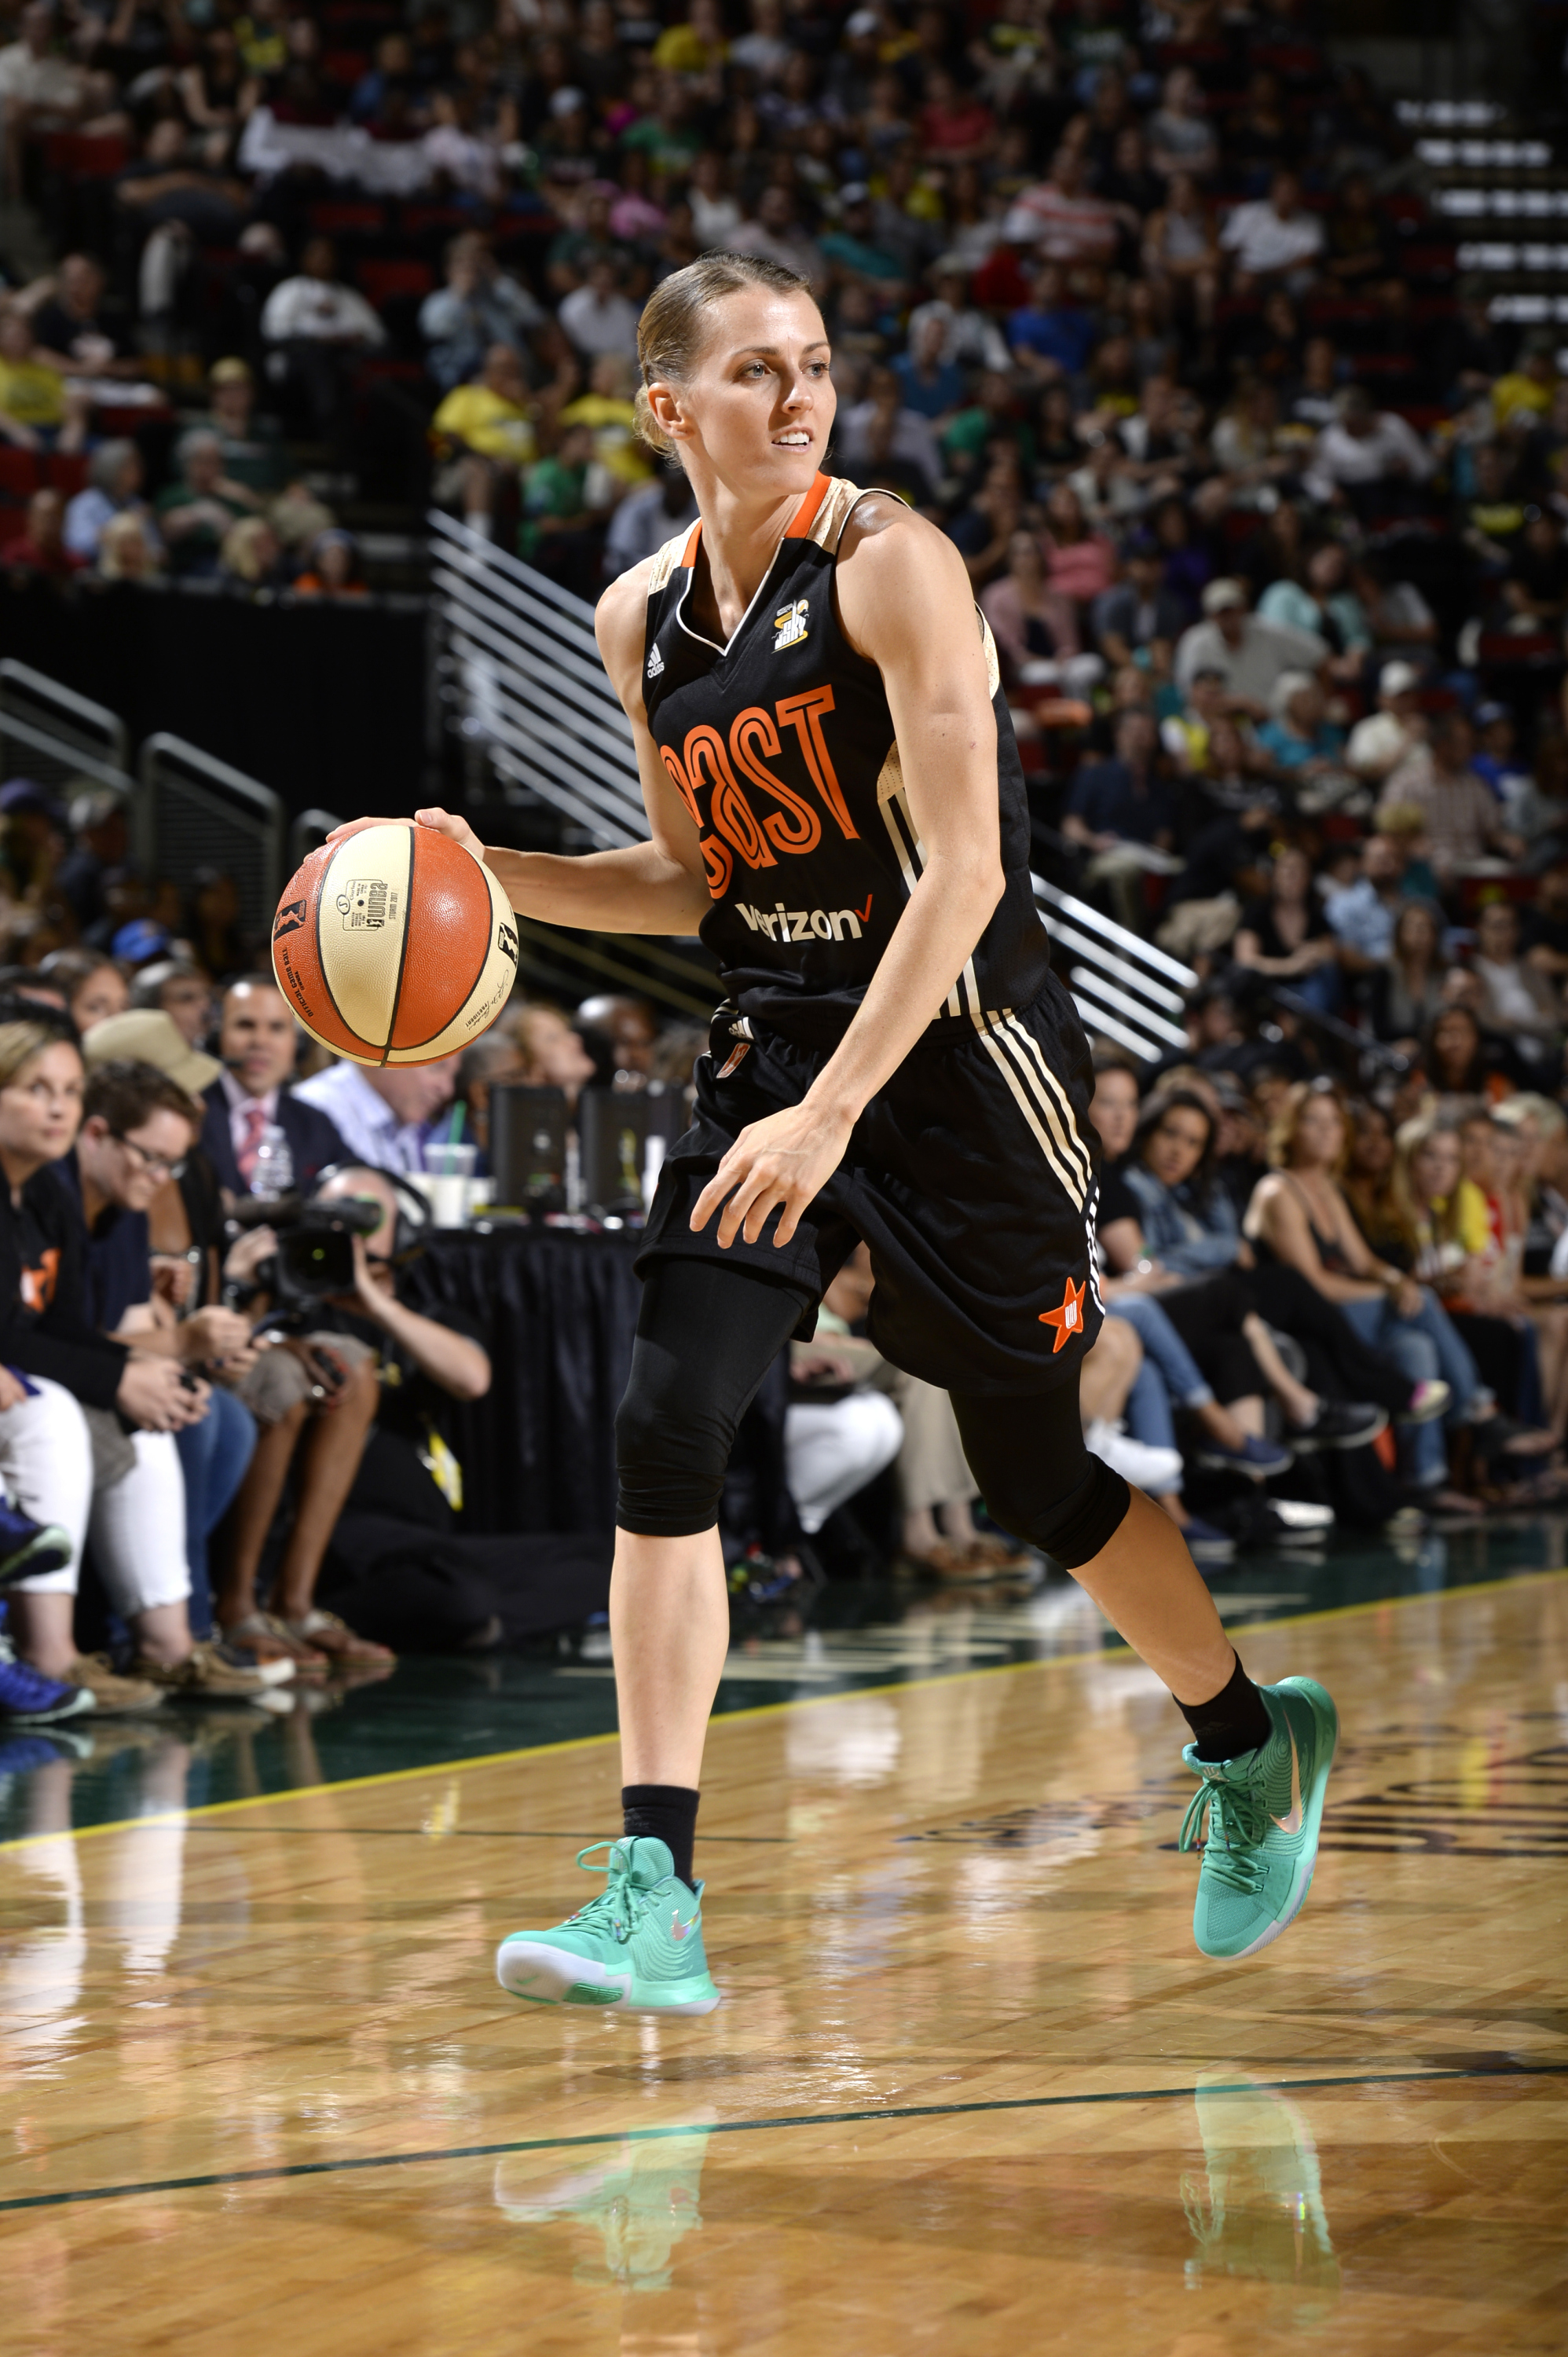 Chicago Sky's Allie Quigley Named 2015 WNBA Sixth Woman of the Year